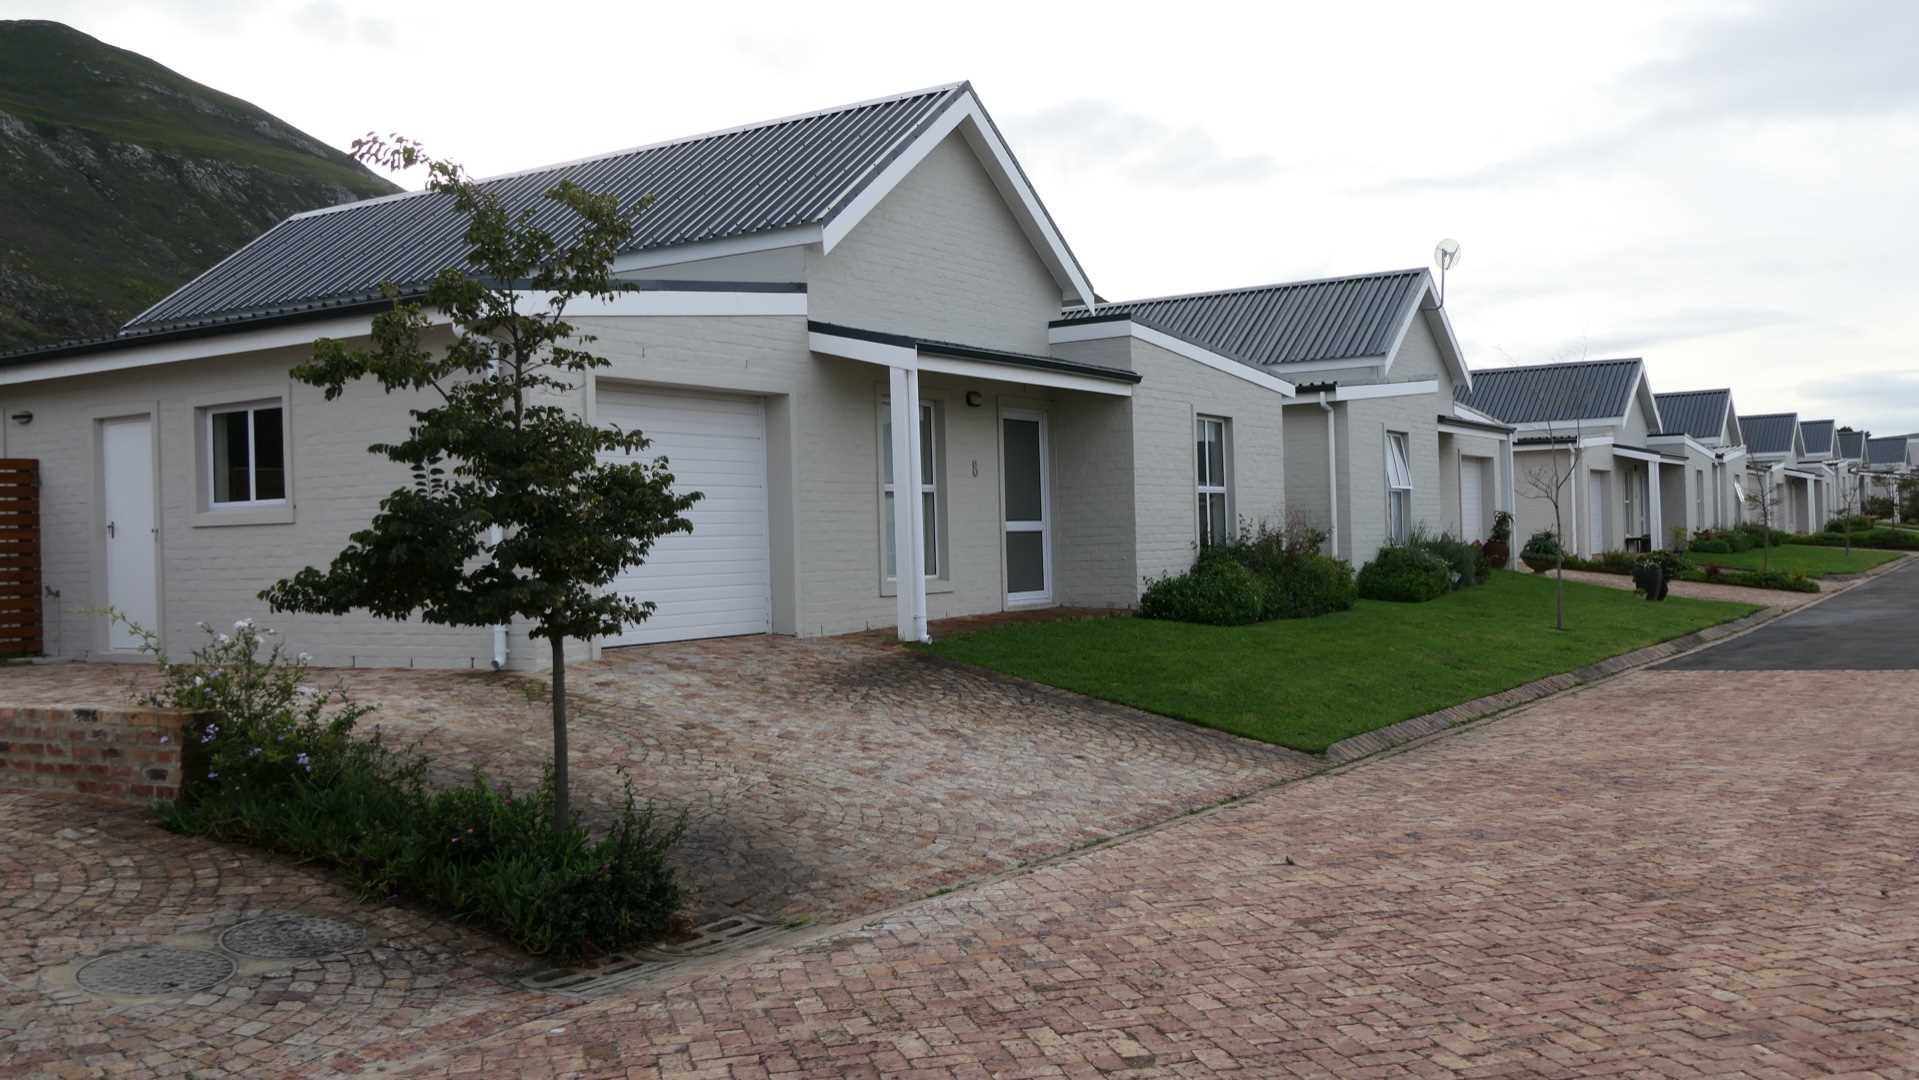 Property for sale in Onrus, Hermanus.